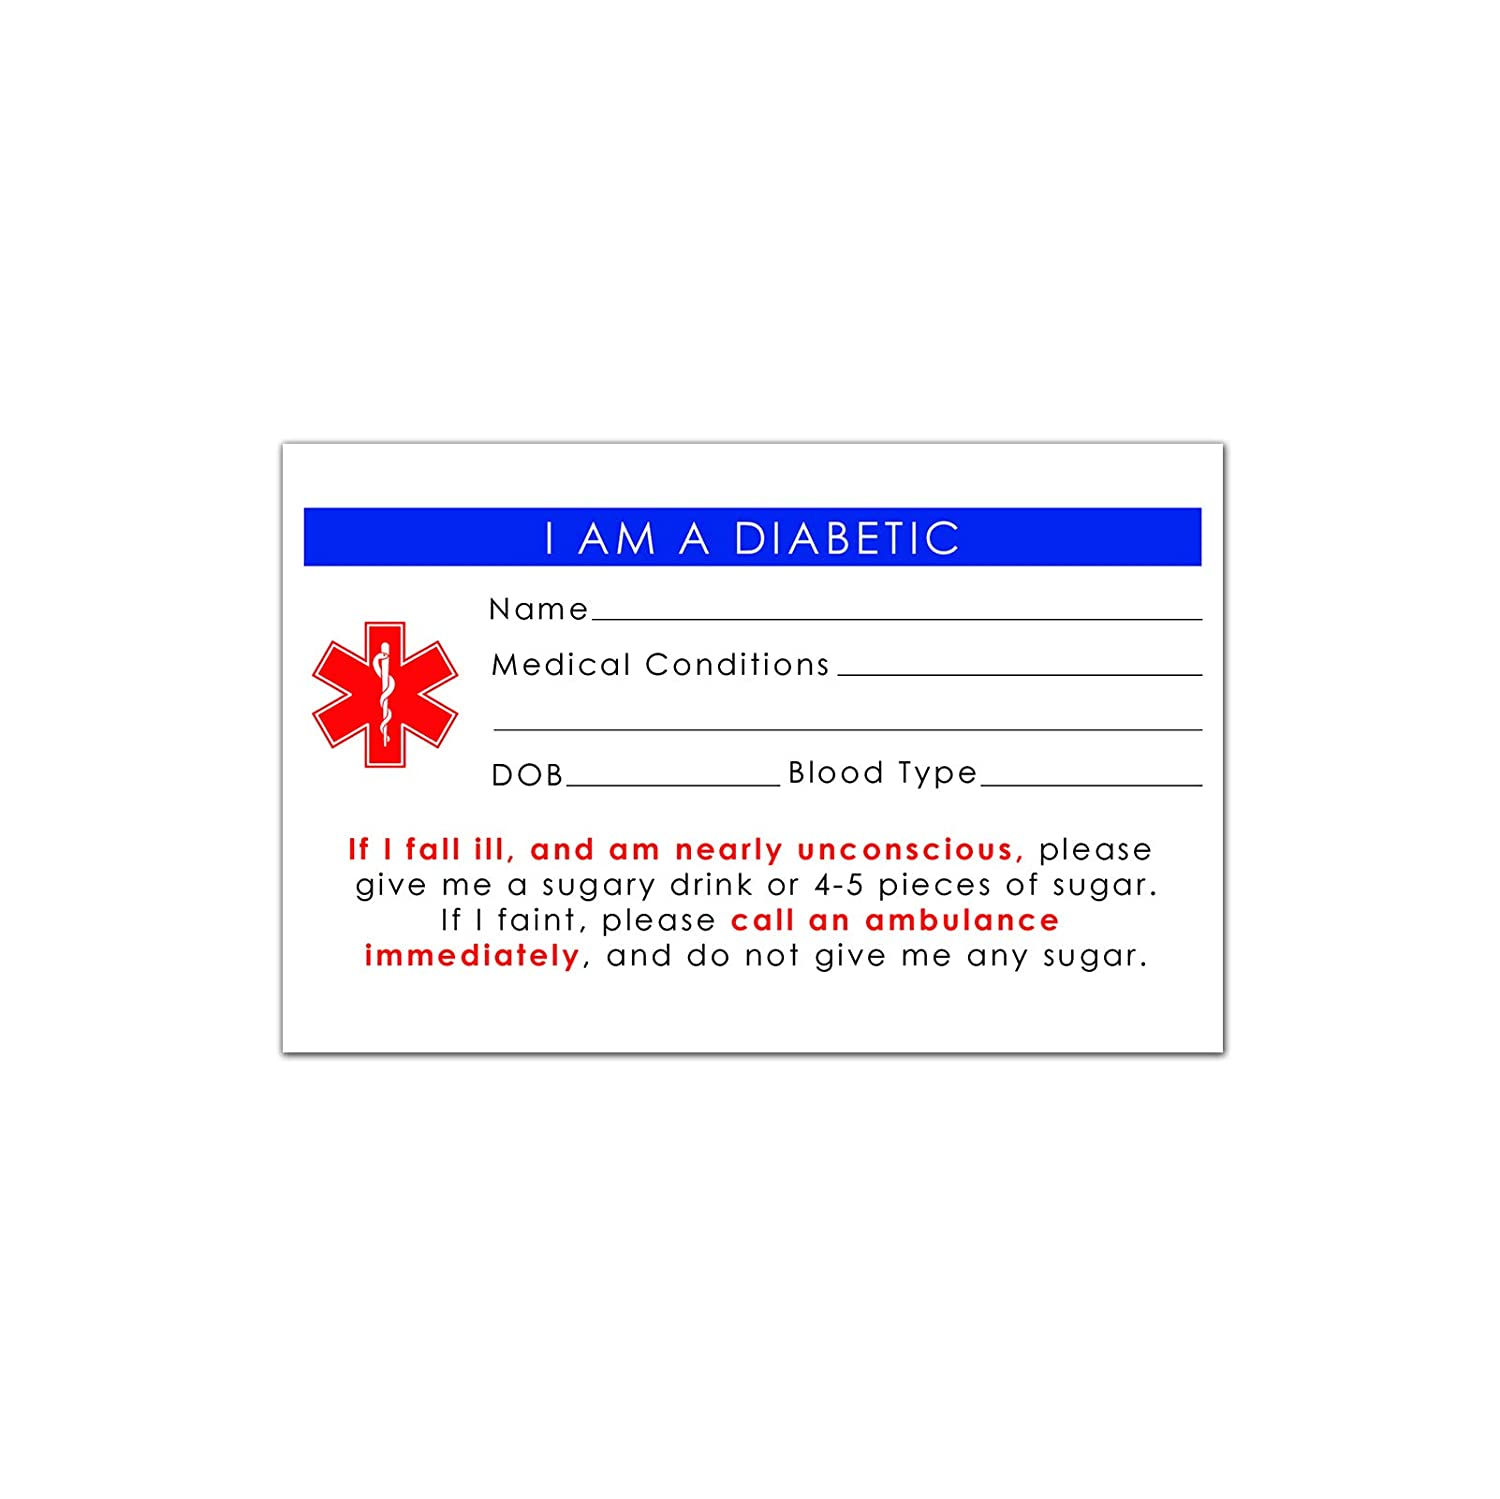 Amazon.com: 5-Pack Diabetic Medical Alert ID Wallet Card Emergency 2.15 * 3.35 inch (5): Health & Personal Care